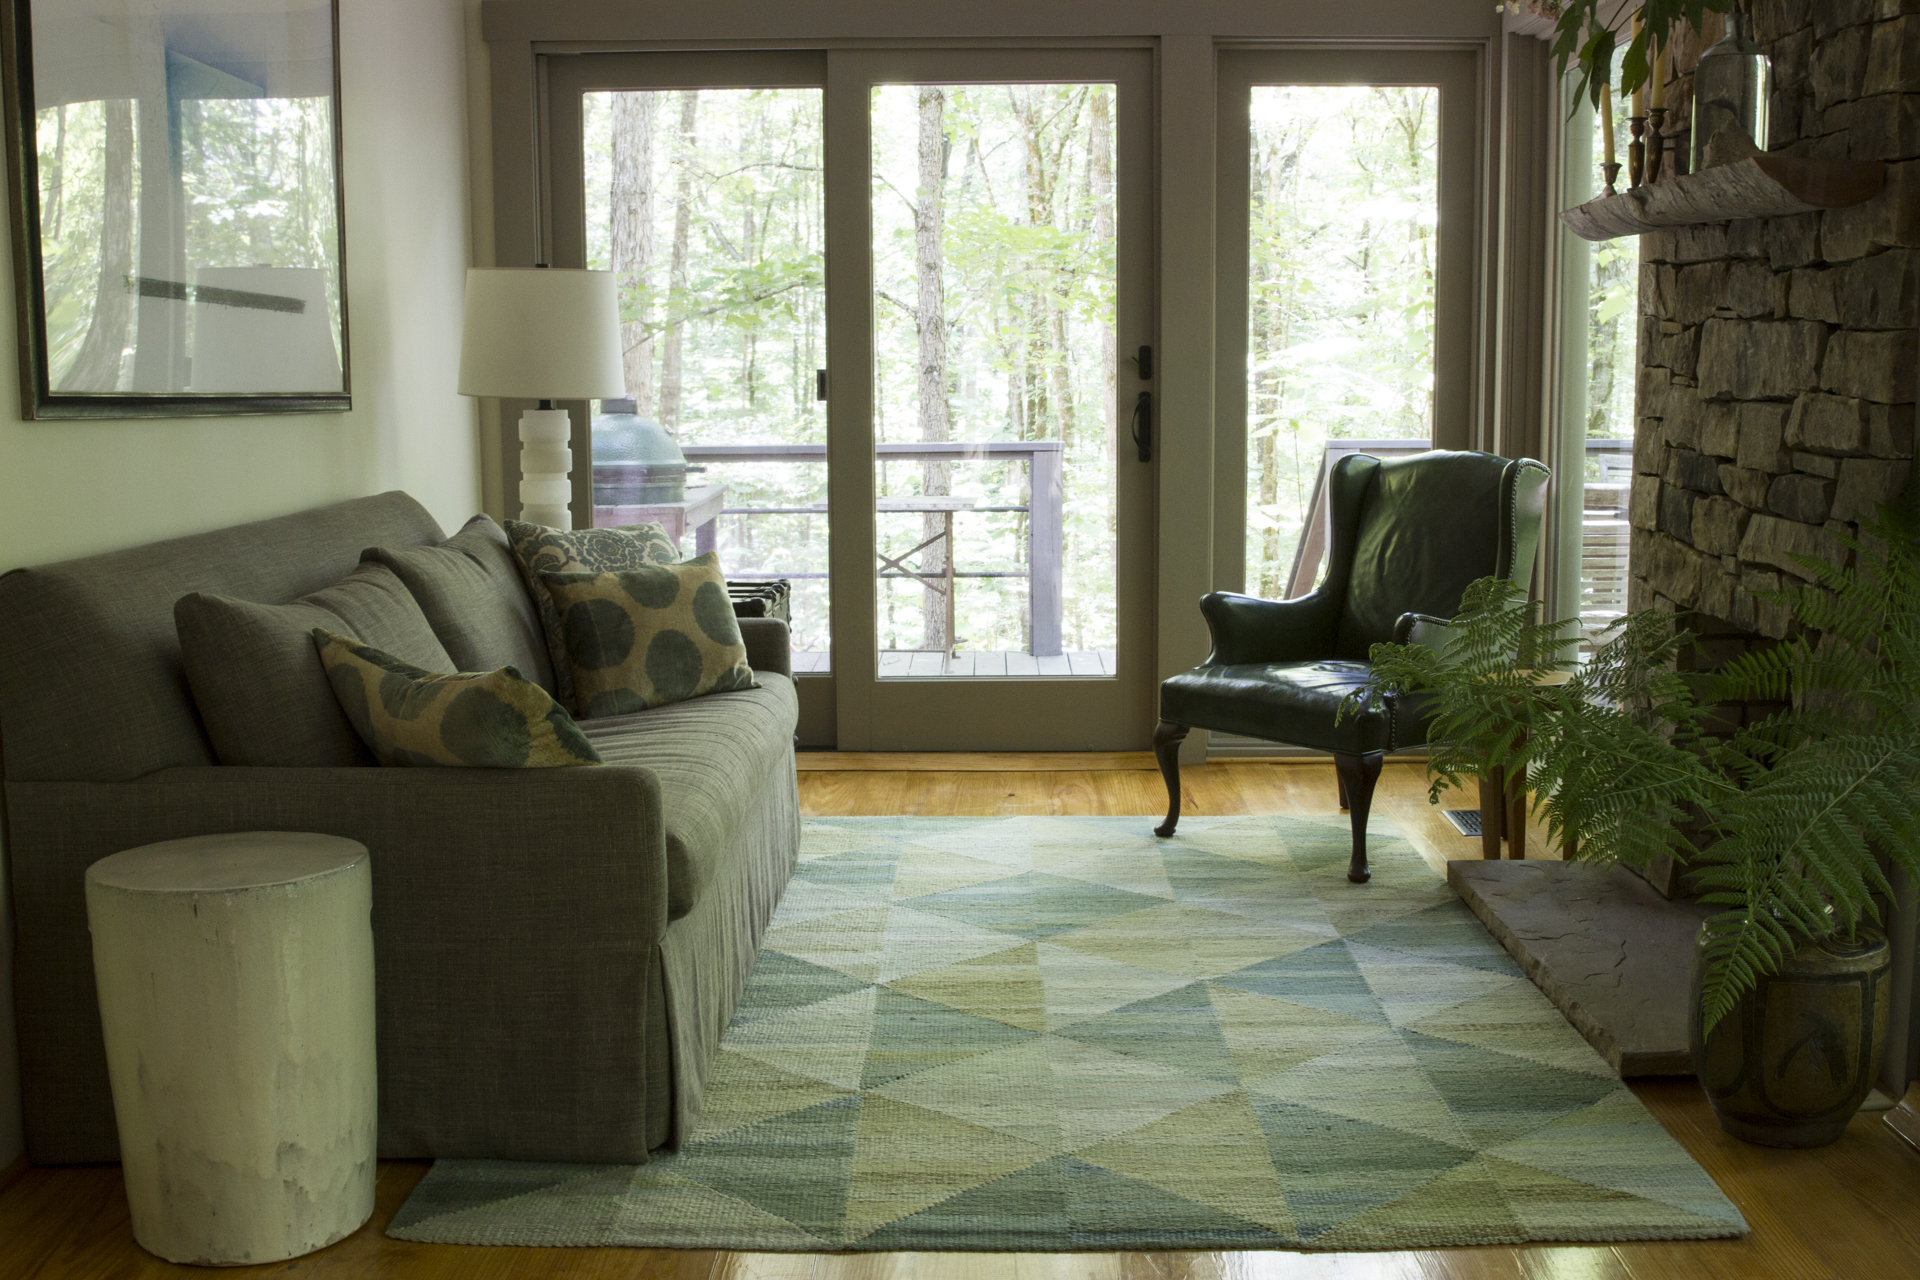 An example of Lyn Sterling Montagne handwoven rugs, in shades of green complements the lush view of this Georgia retreat's relaxed, organic sunroom.